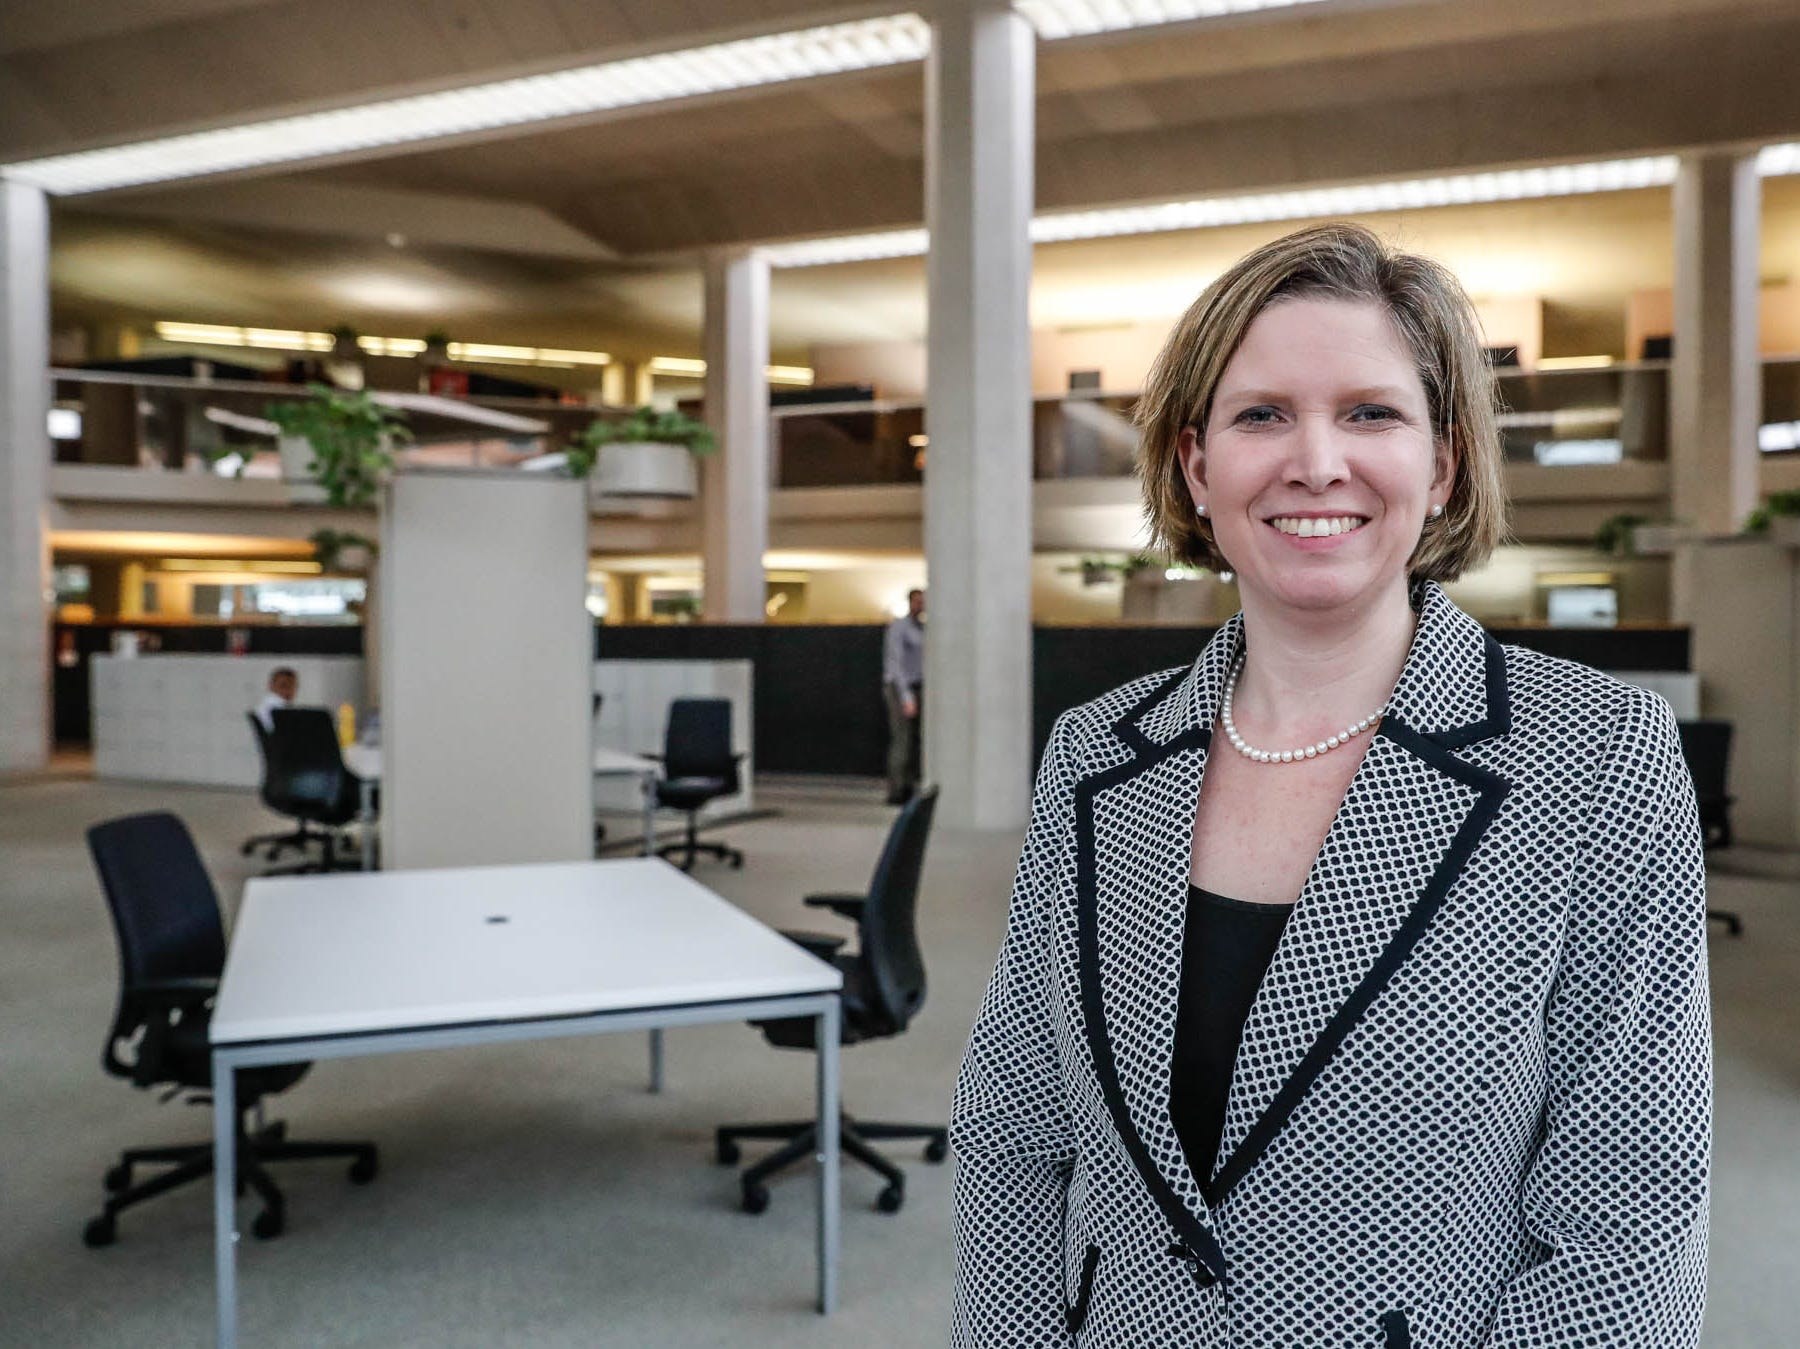 Vice President and Chief Technical Officer at Cummins Inc., Jennifer Rumsey, stands in a co-working space at the companies Columbus, Ind. headquarters on Monday, Jan. 8, 2019.